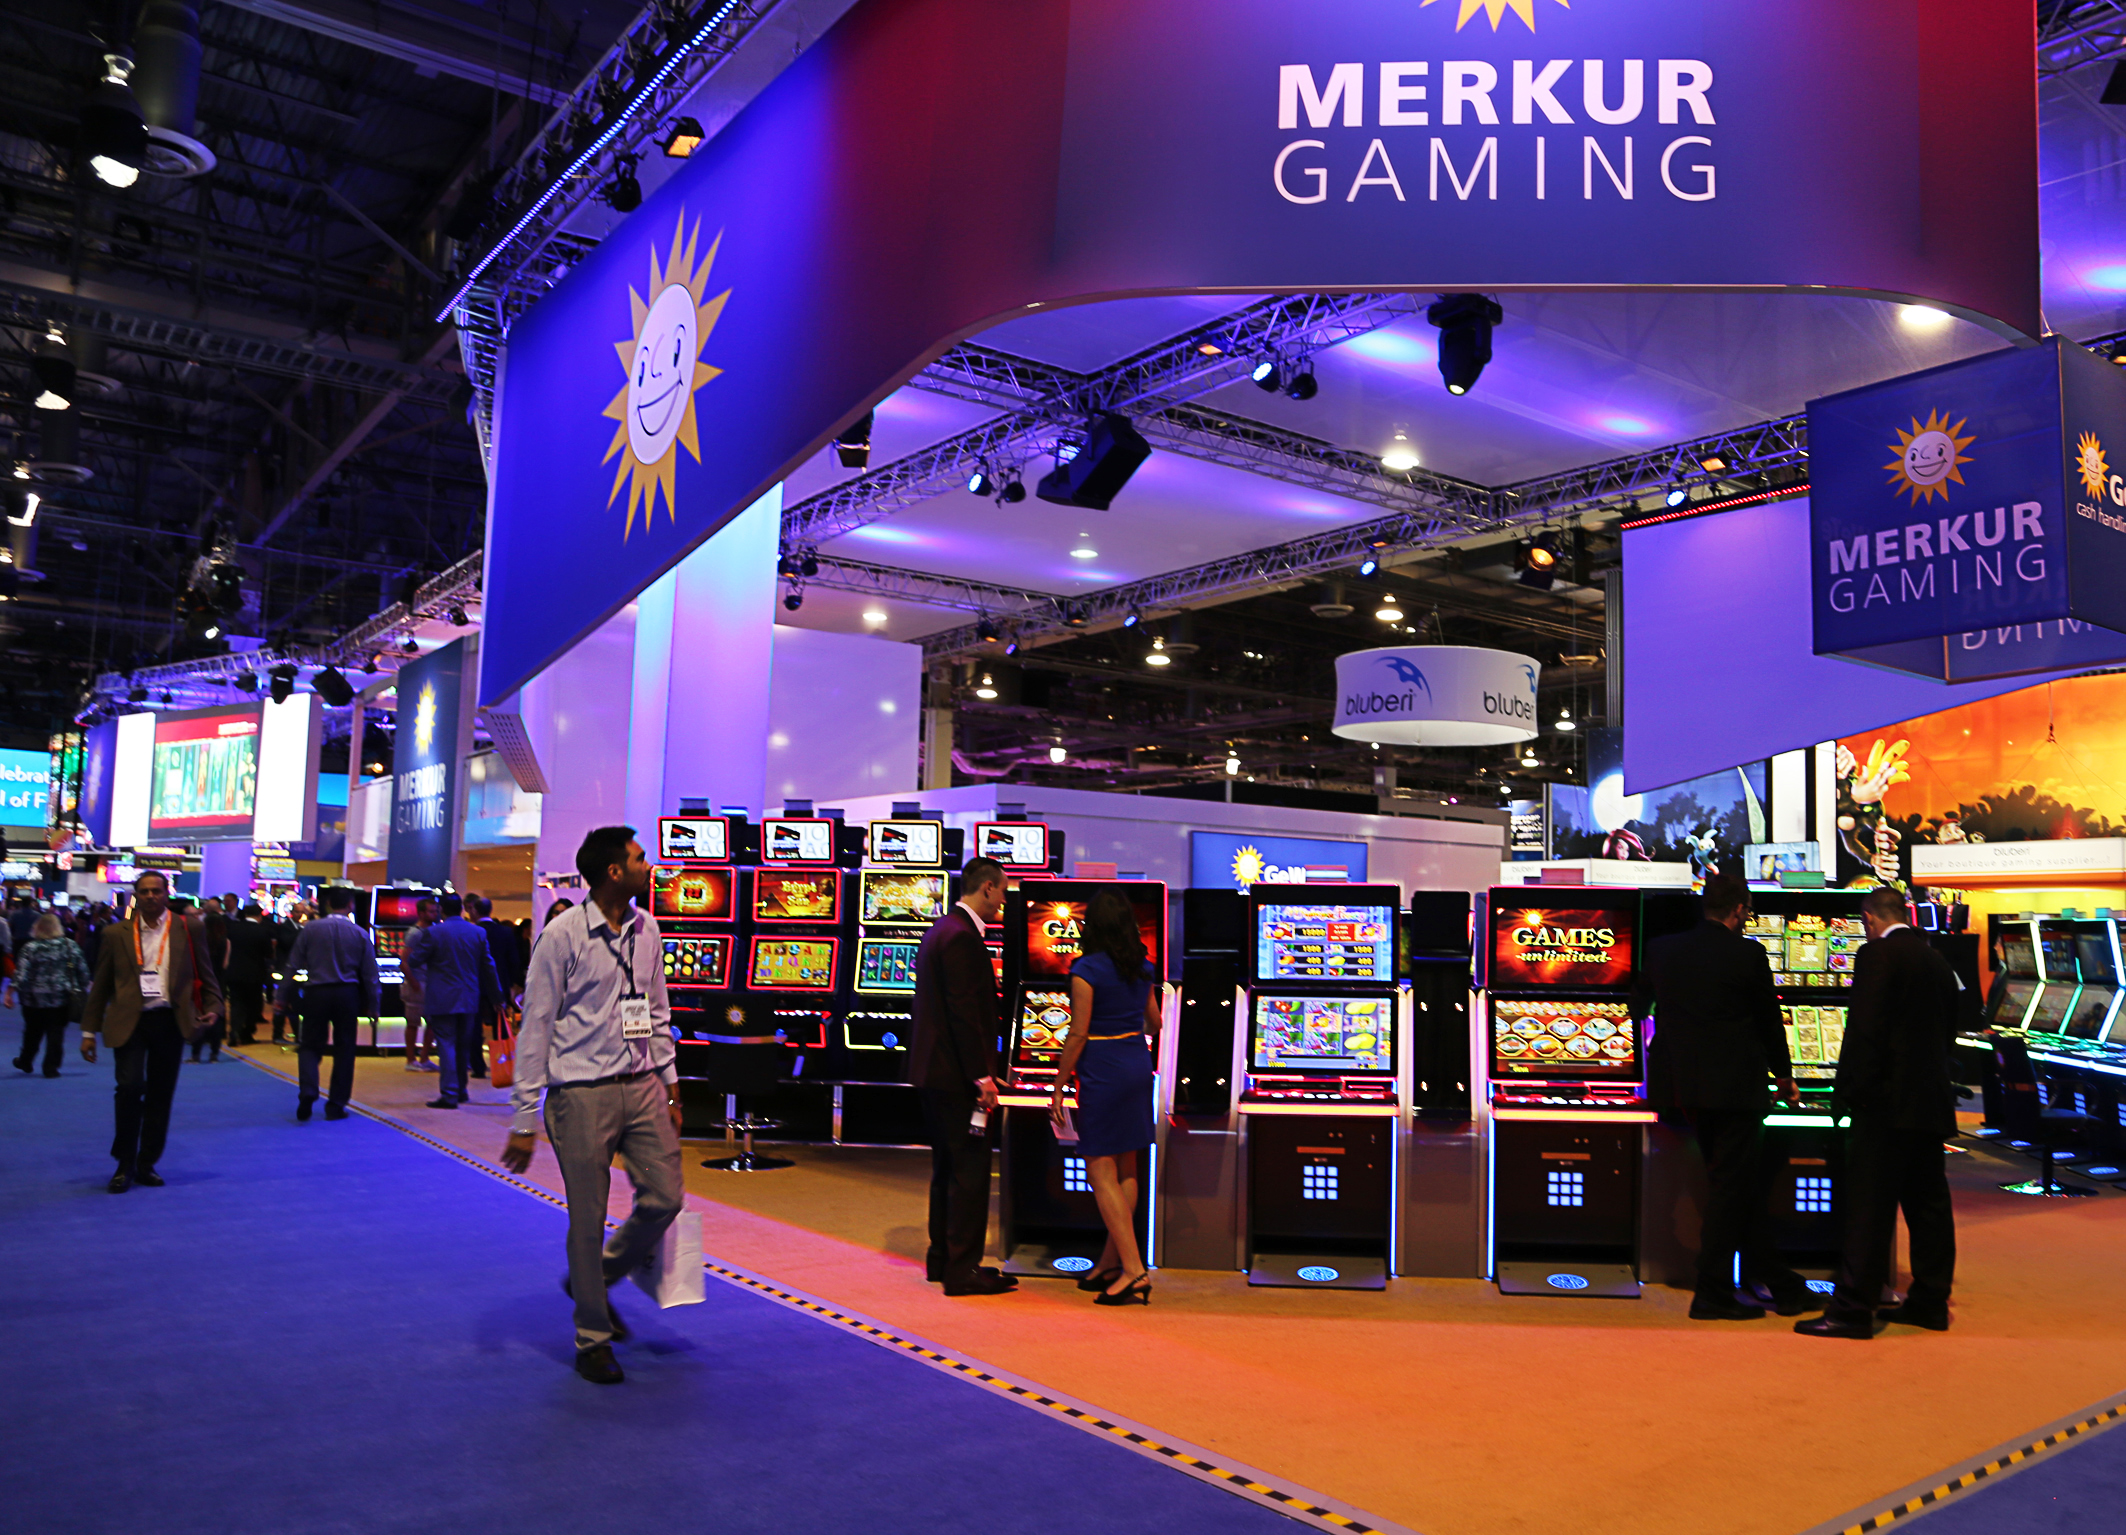 Merkur Gaming to present 100 games at G2E